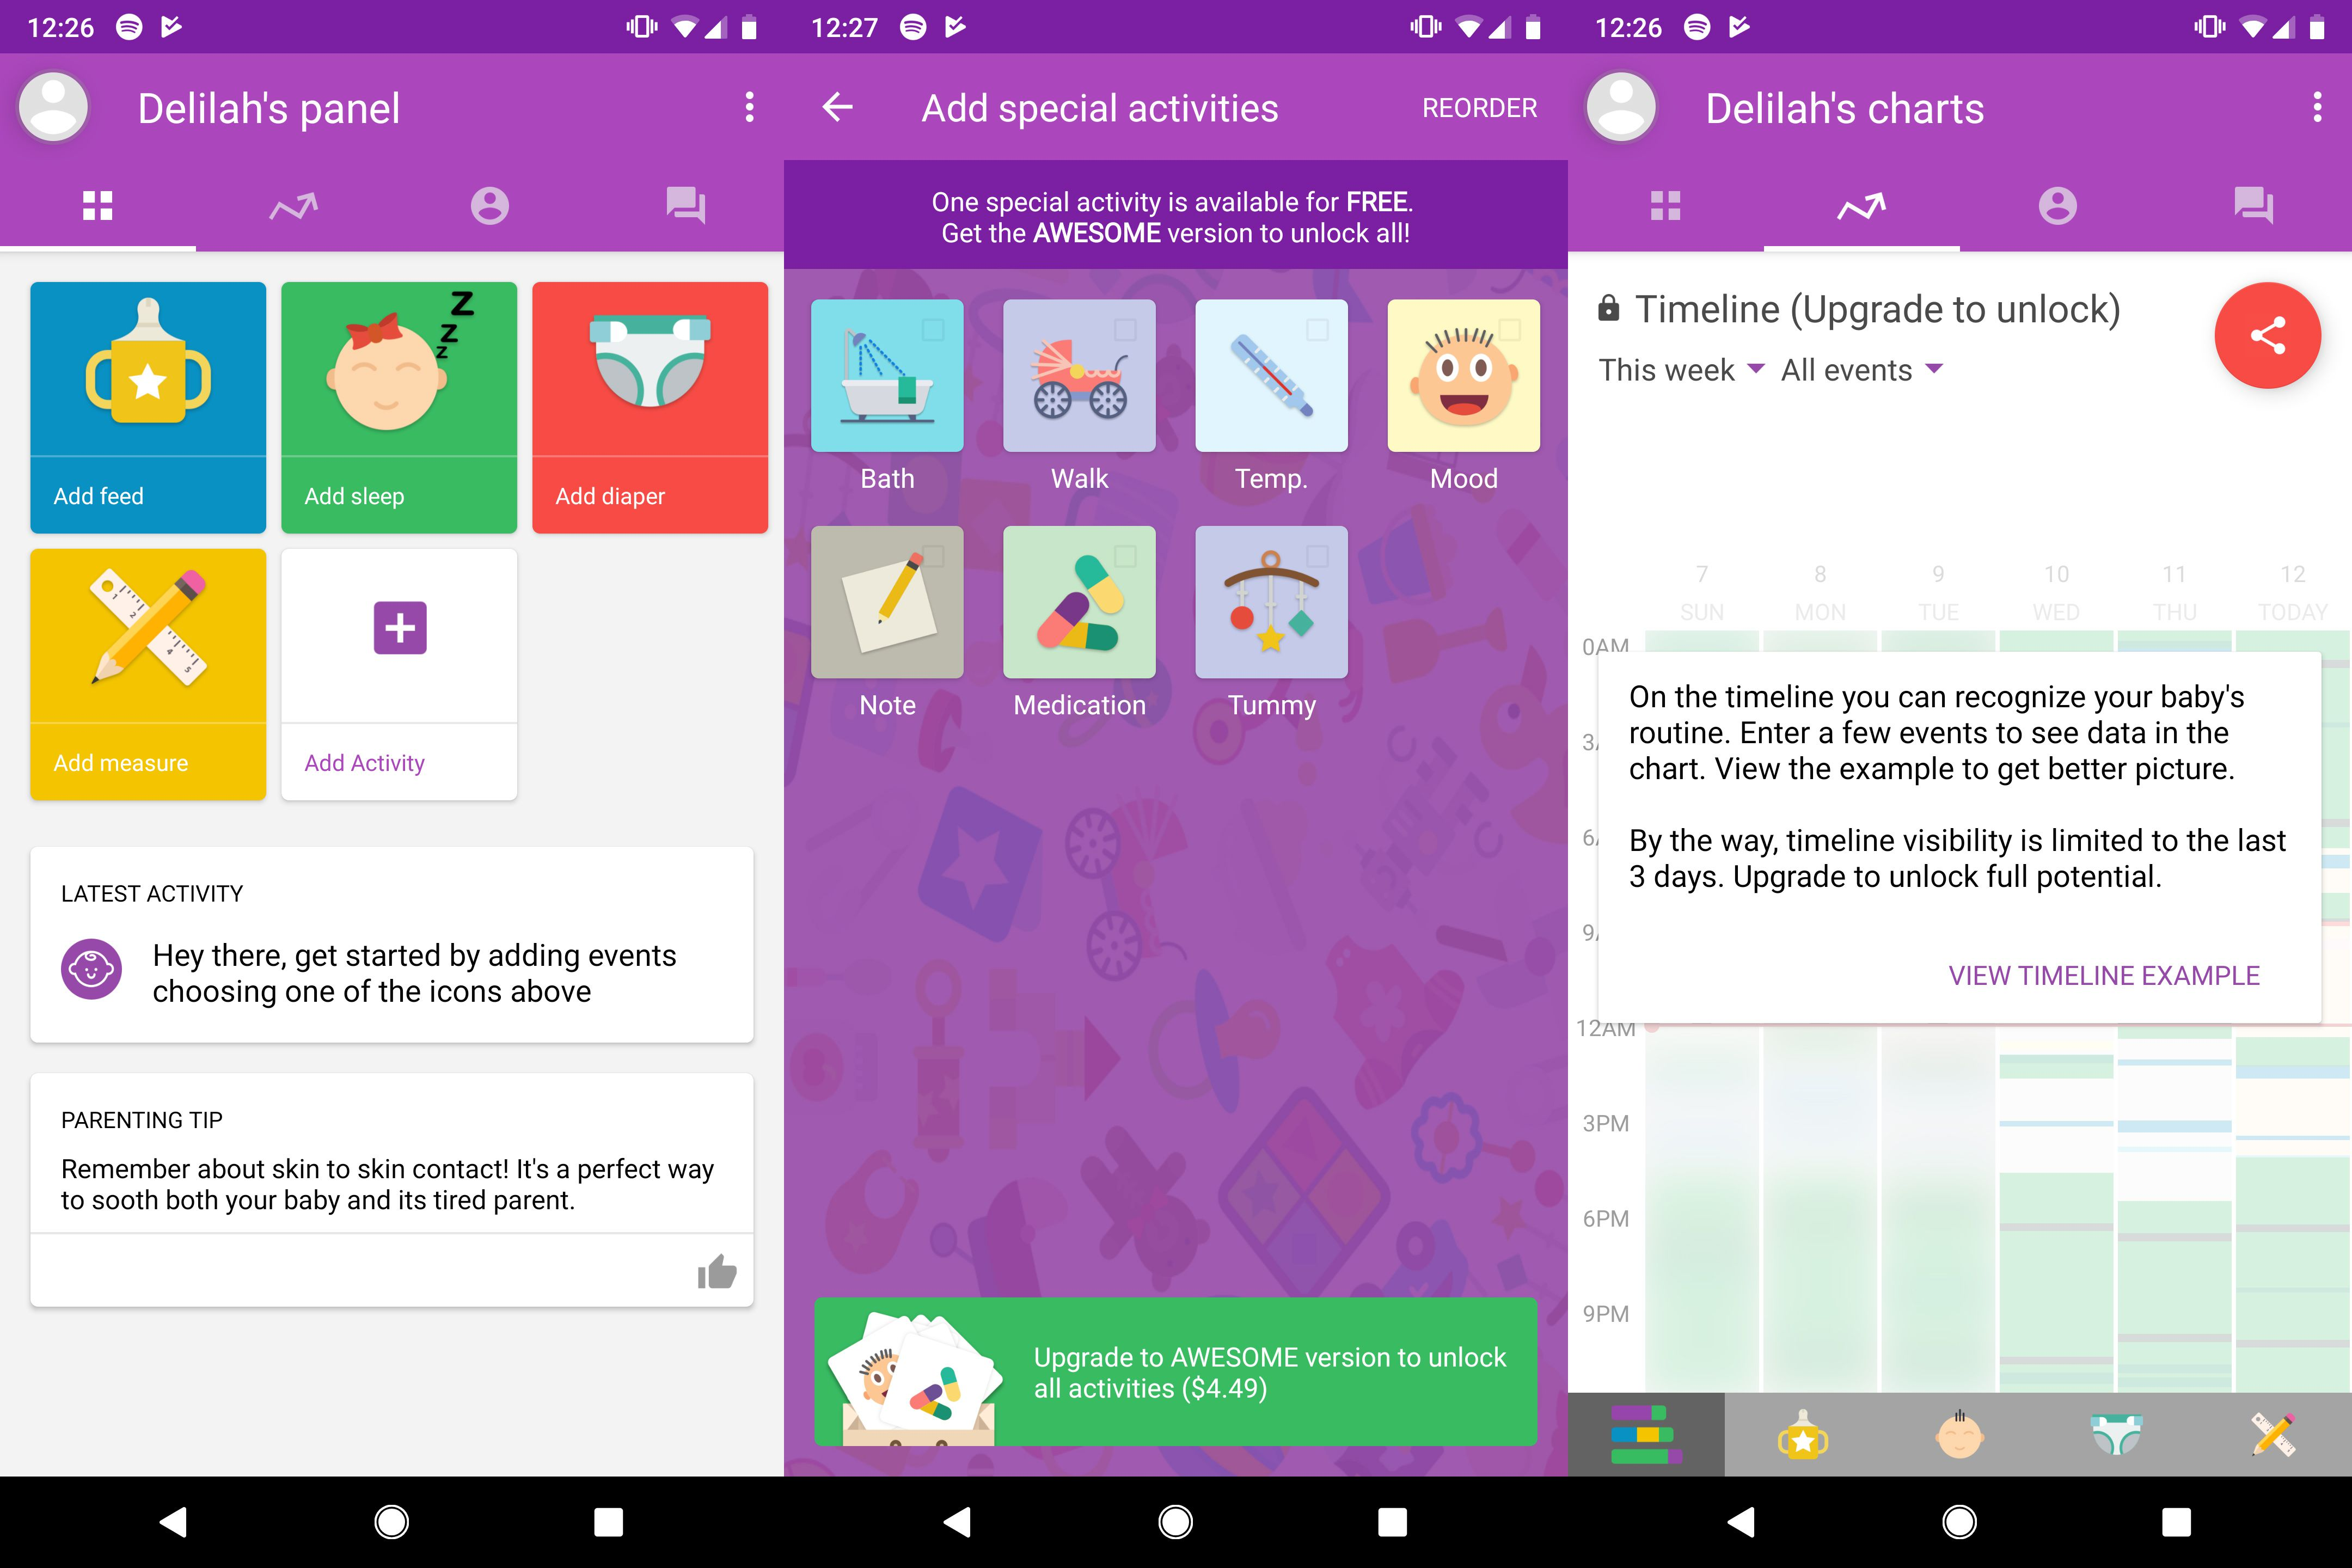 Baby Manager app for new dads keeps track of baby details